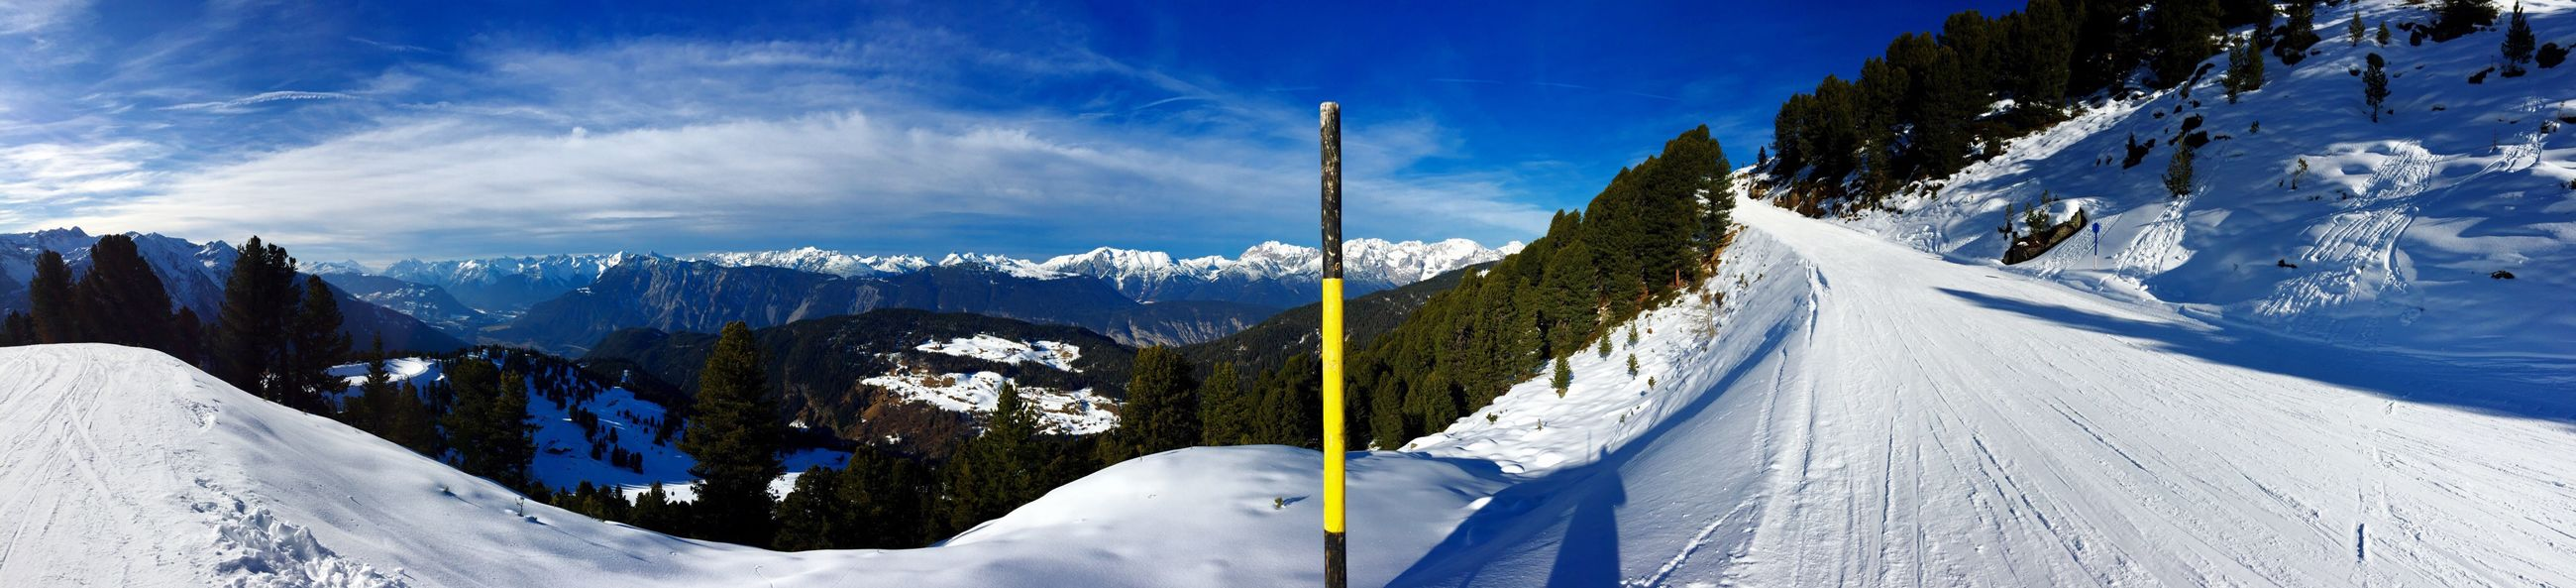 snow, cold temperature, winter, mountain, season, tranquil scene, tranquility, landscape, sky, snowcapped mountain, beauty in nature, the way forward, scenics, blue, mountain range, nature, weather, covering, white color, road